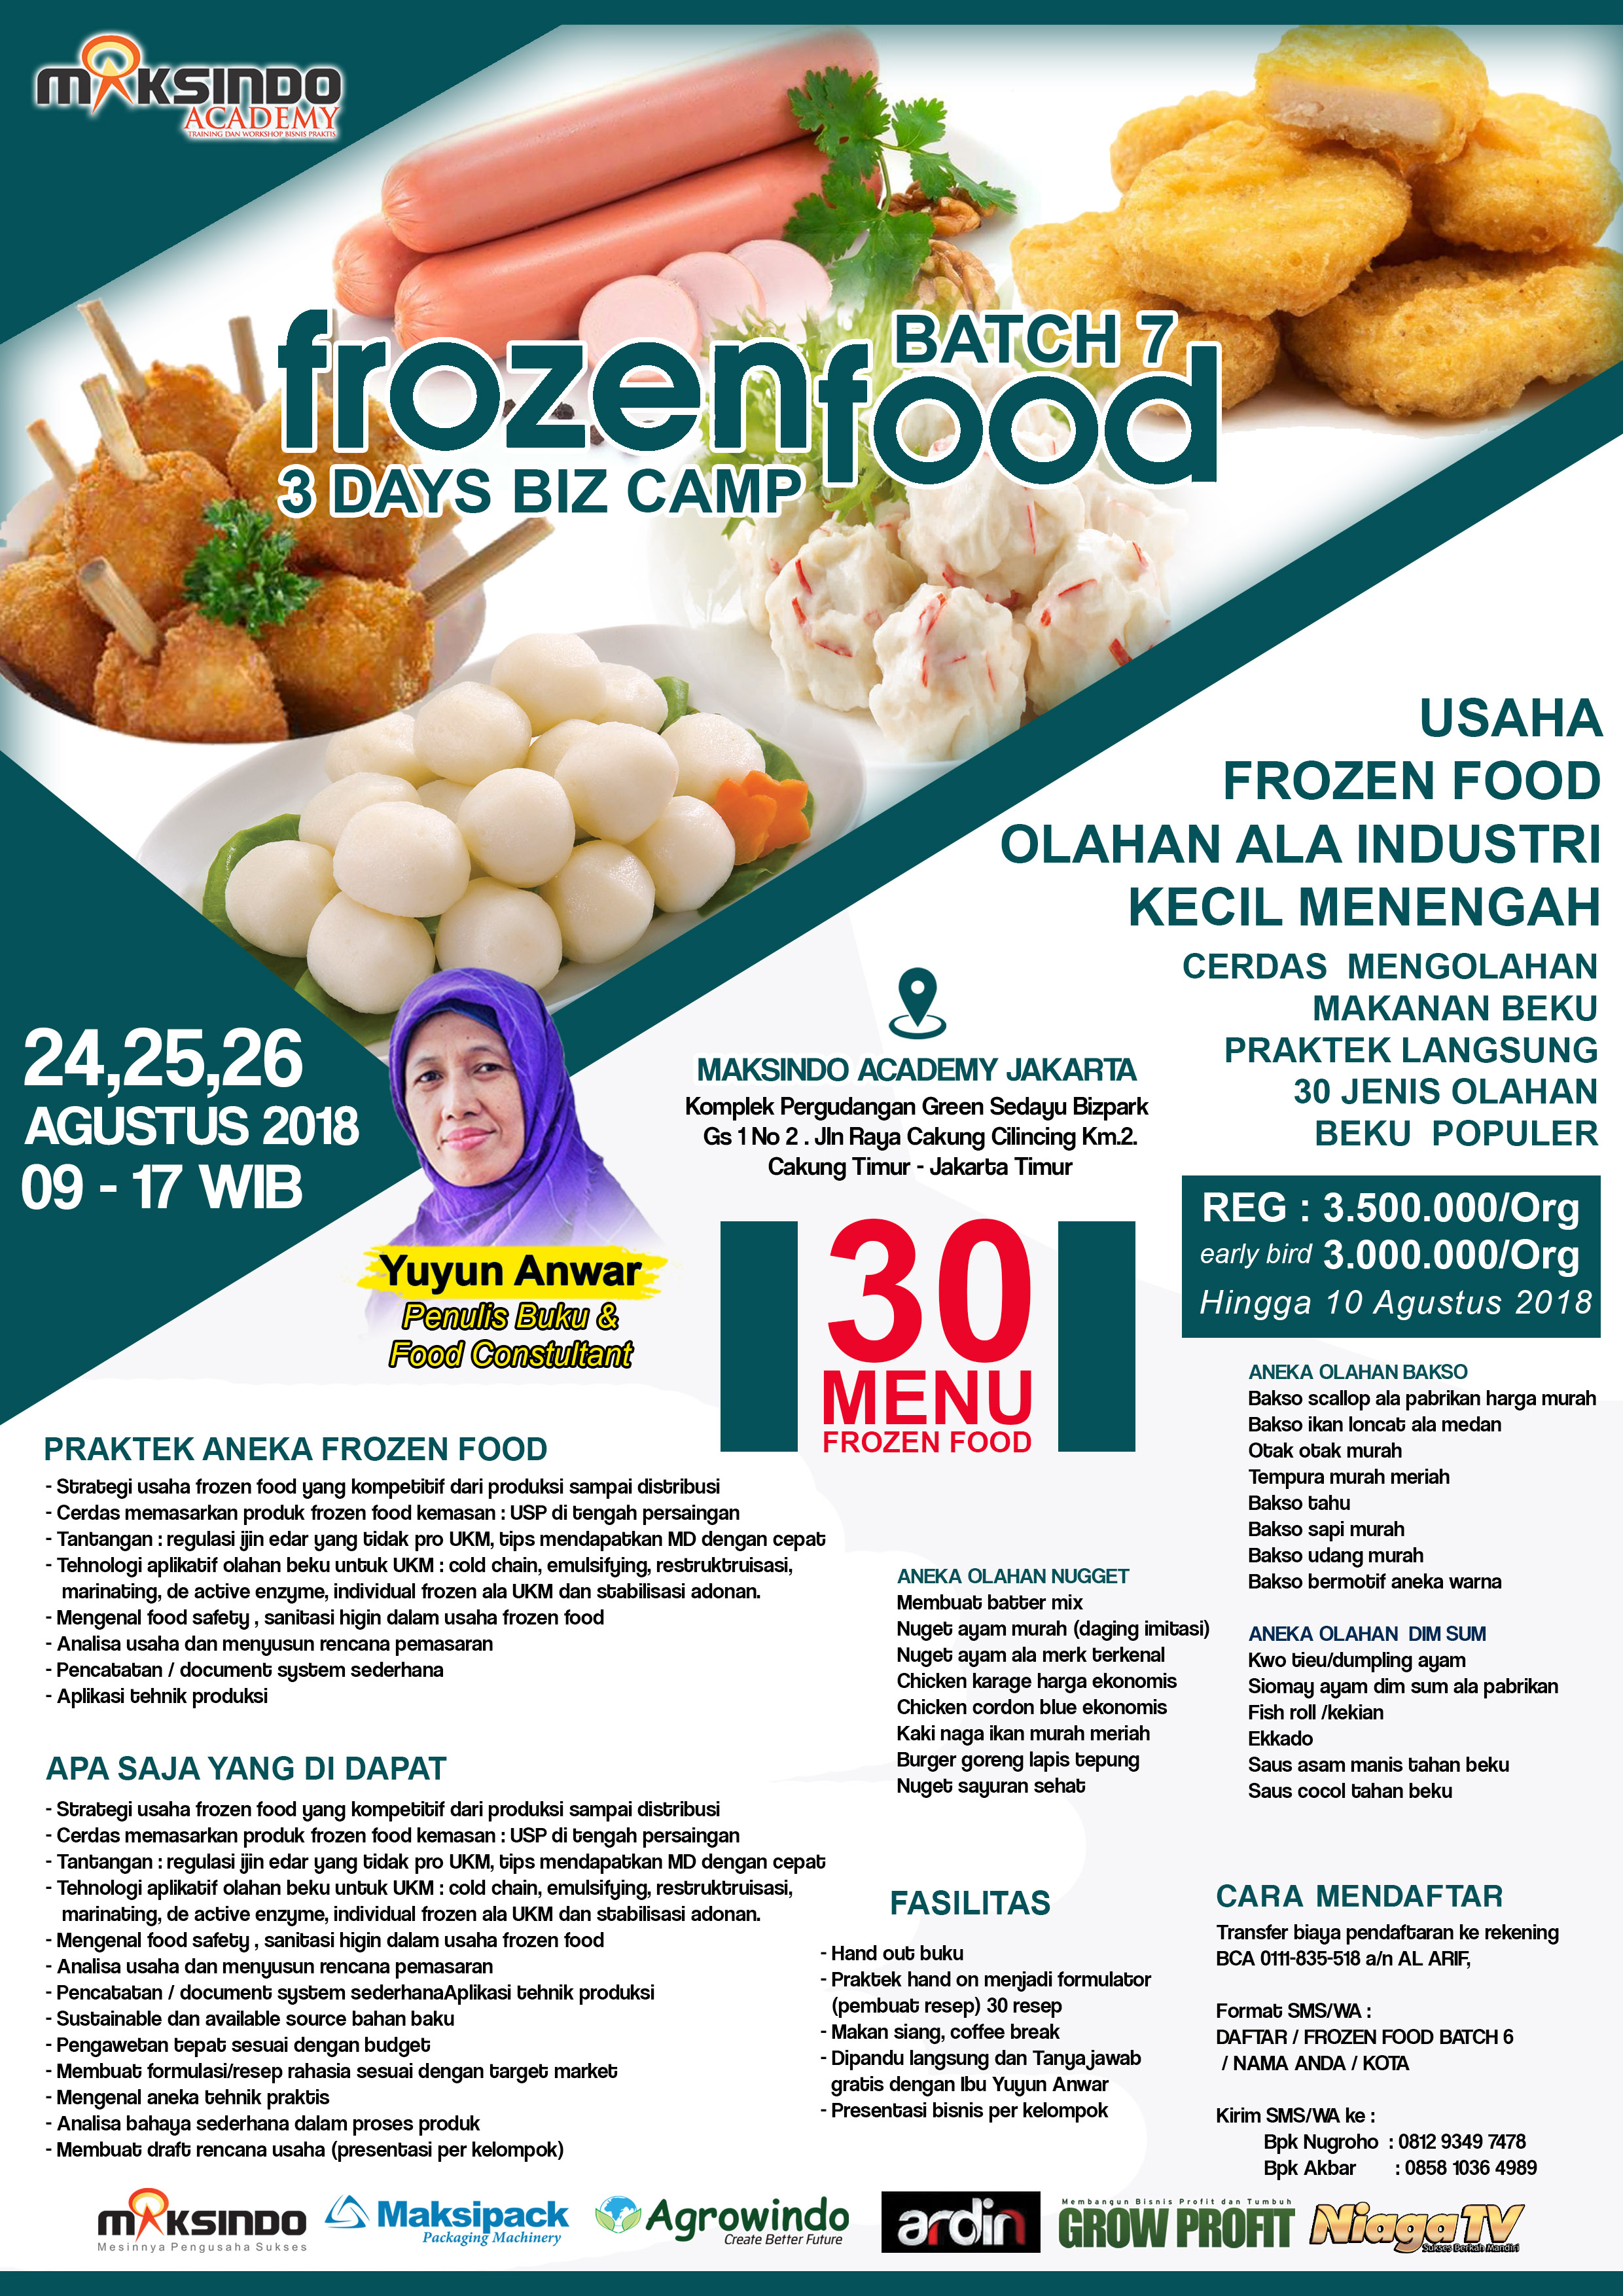 Training Usaha Frozen Food 3 4 5 September 2018 Toko Mesin